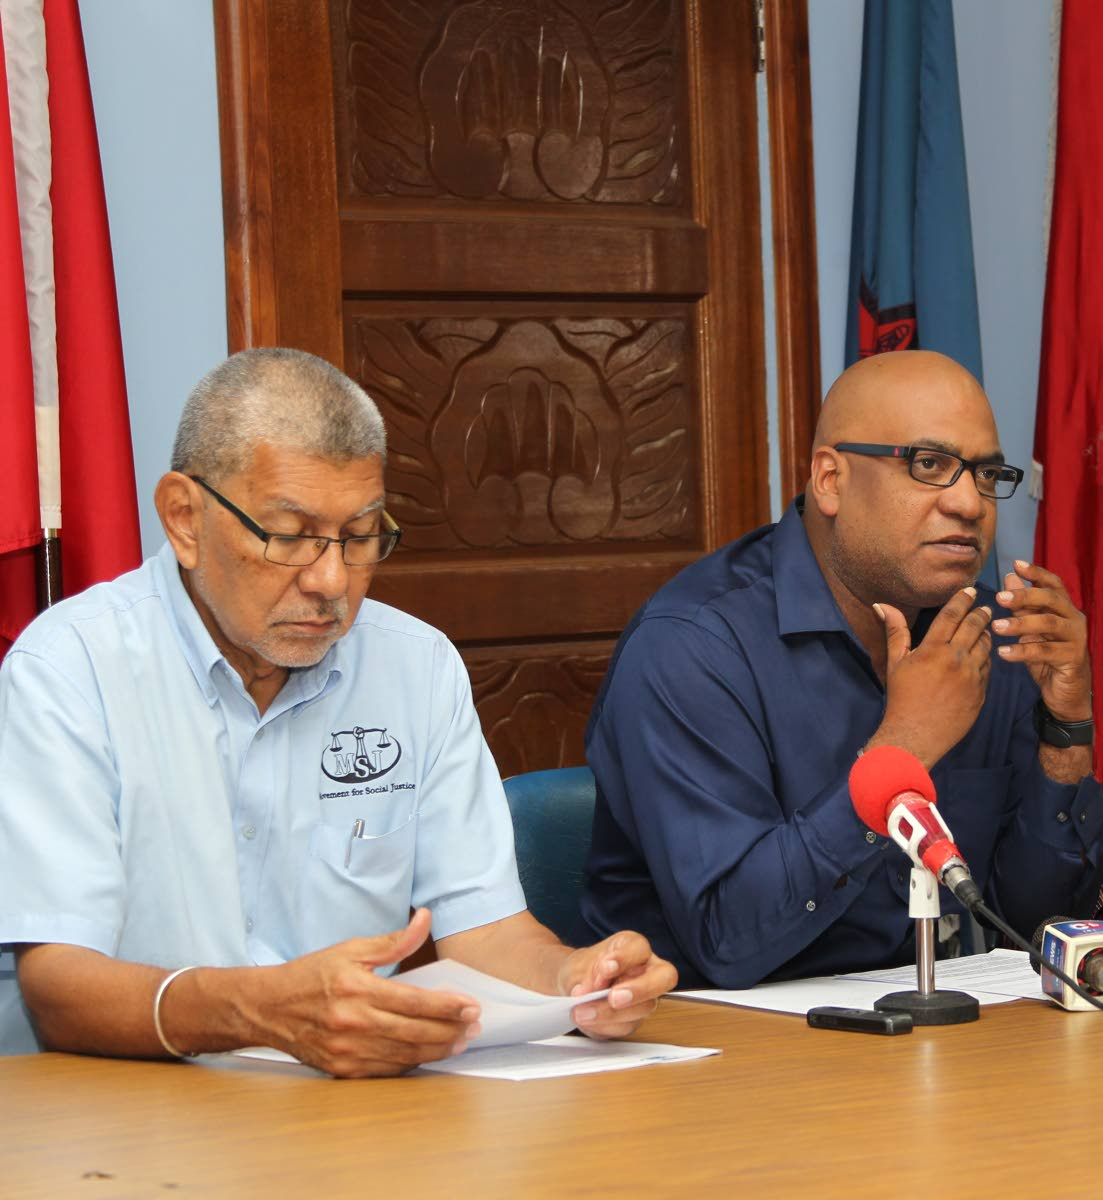 MATTERS AT HAND: MSJ political leader David Abdulah, left, listens as OWTU's Education and Research Officer Ozzi Warwick  PHOTO BY LINCOLN HOLDER